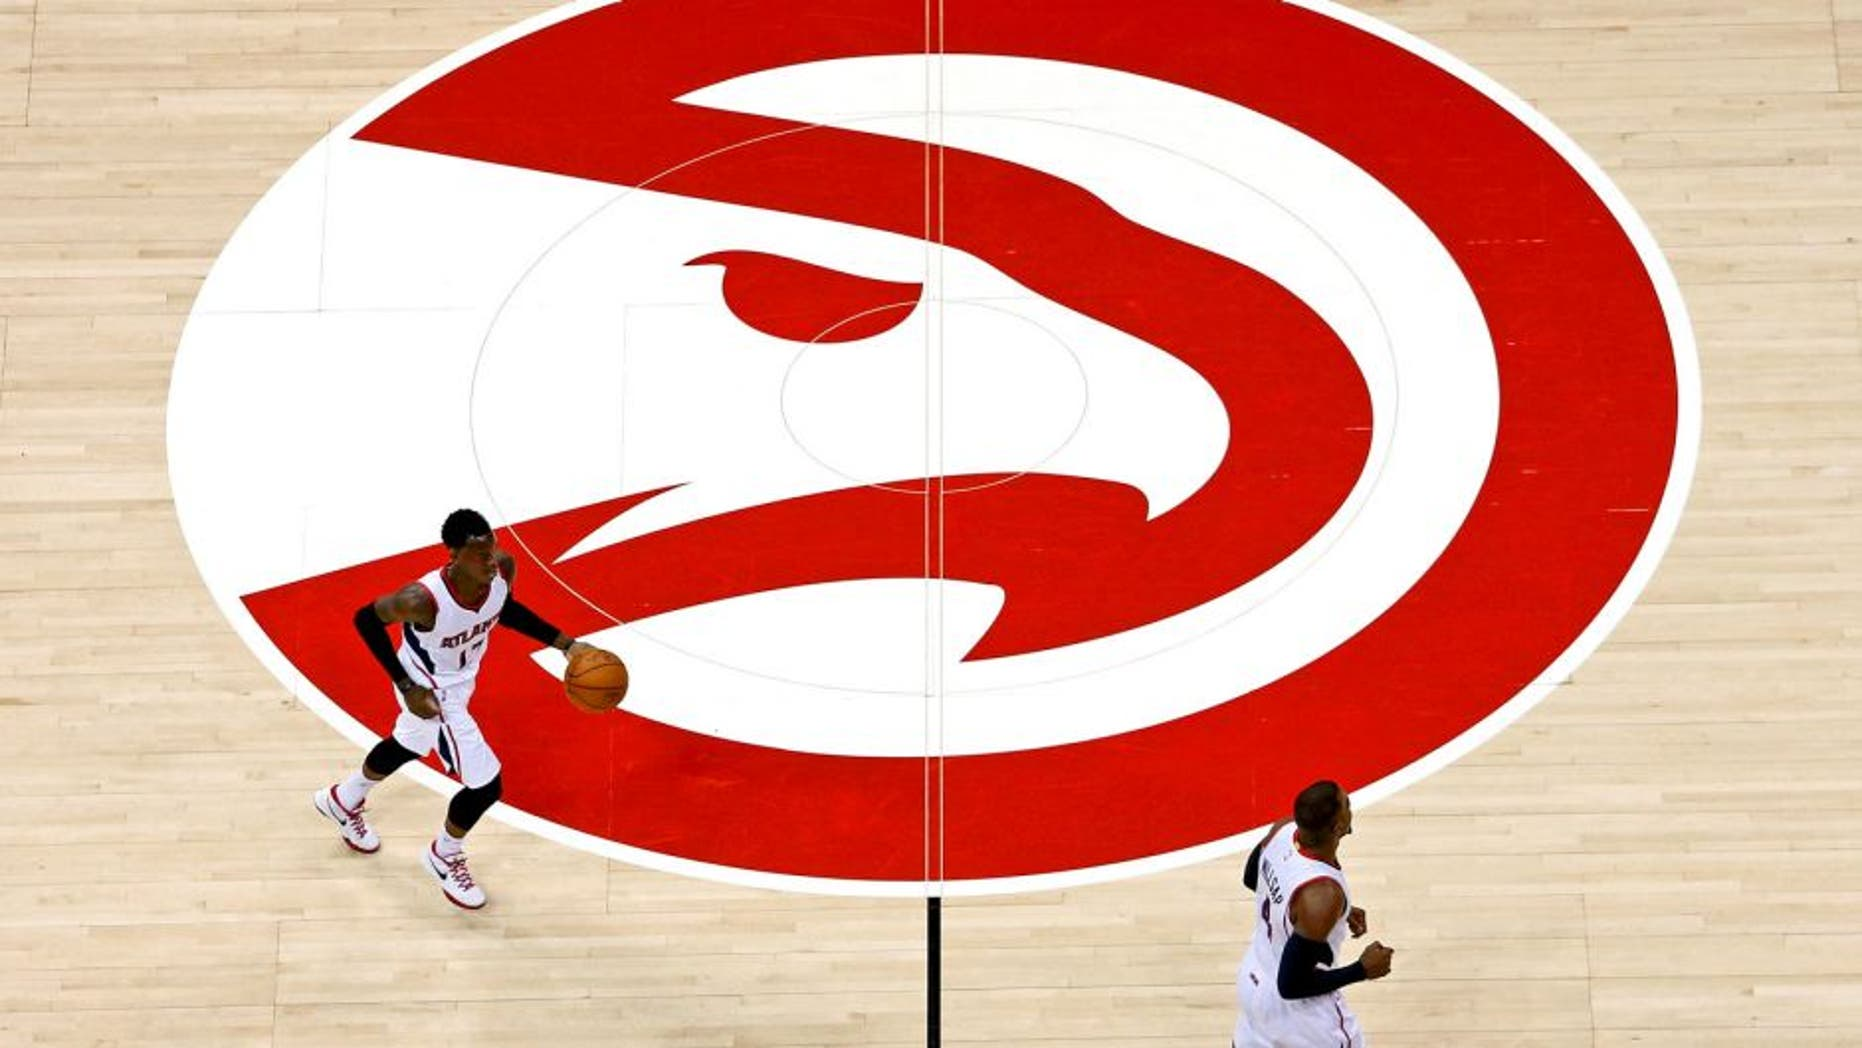 Mar 27, 2015; Atlanta, GA, USA; Atlanta Hawks guard Dennis Schroder (17) and forward Paul Millsap (4) cross the Atlanta Hawks logo in the first quarter of their game against the Miami Heat at Philips Arena. Mandatory Credit: Jason Getz-USA TODAY Sports